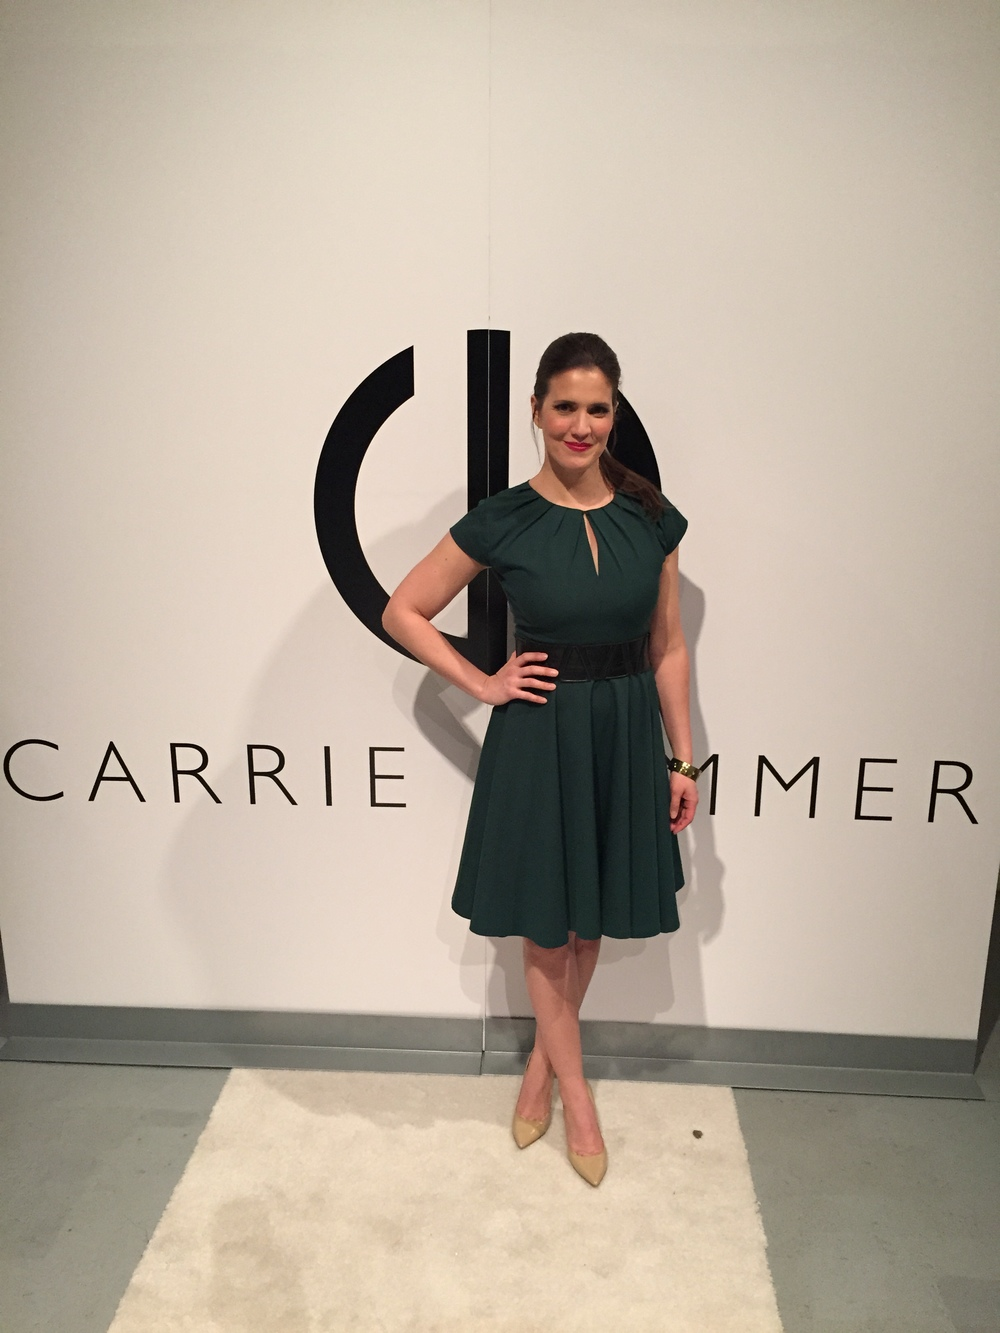 Carrie Hammer step & repeat